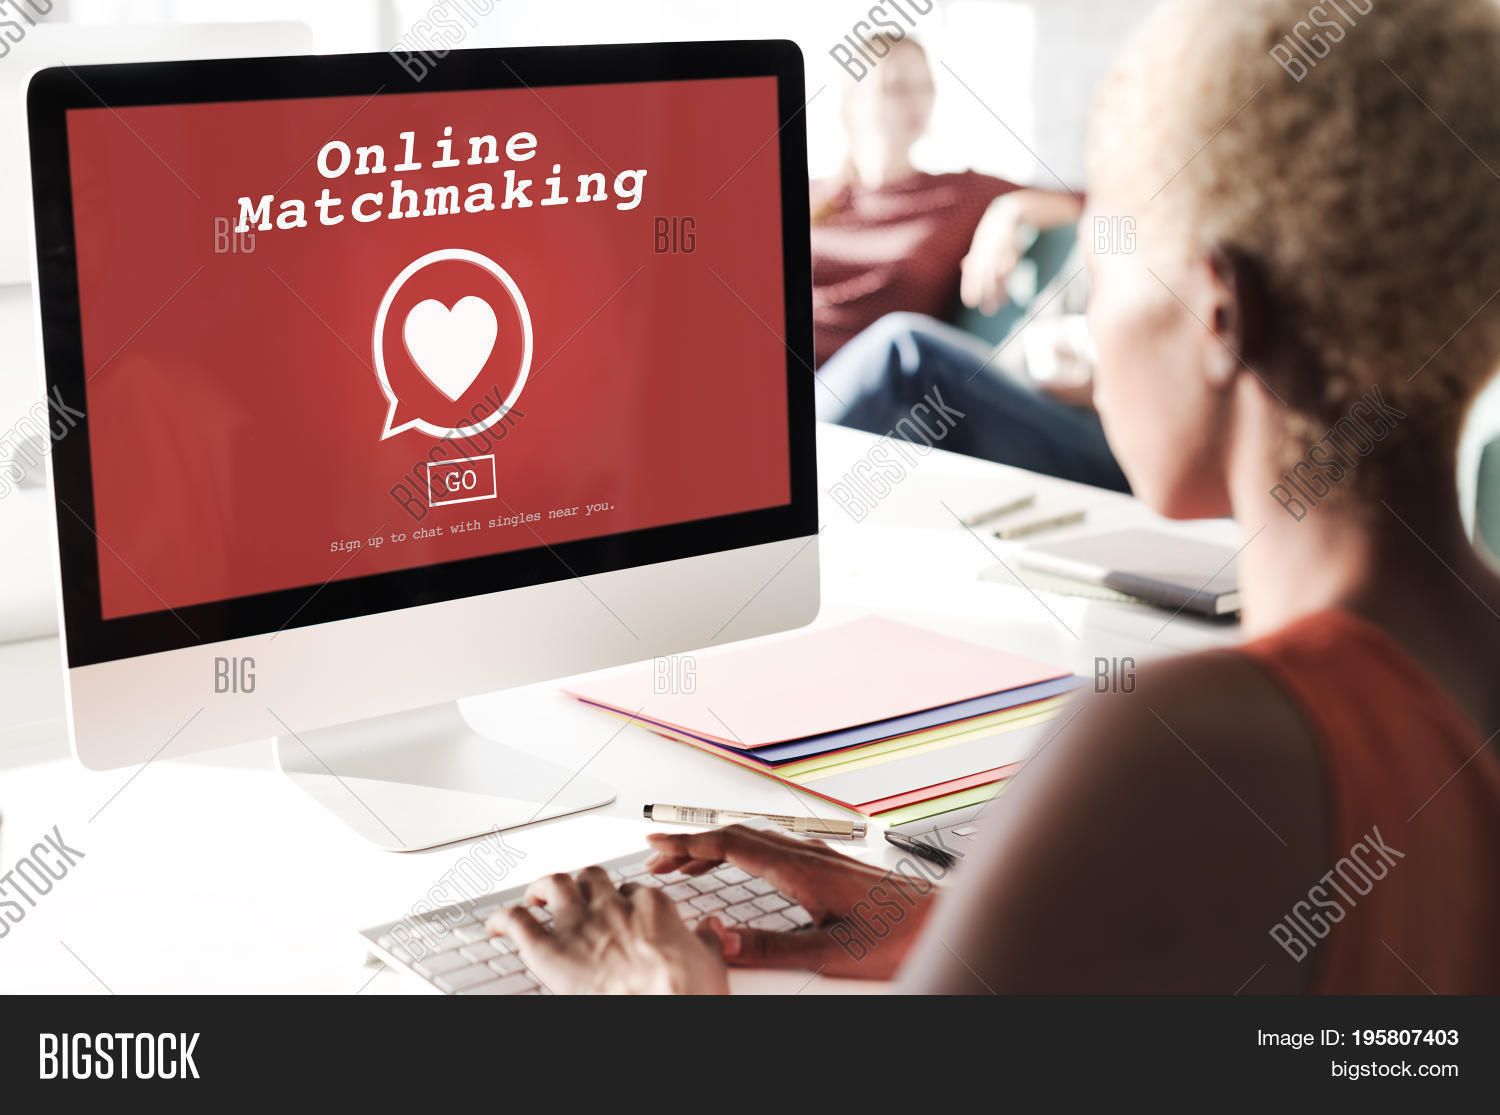 matchmaking sign